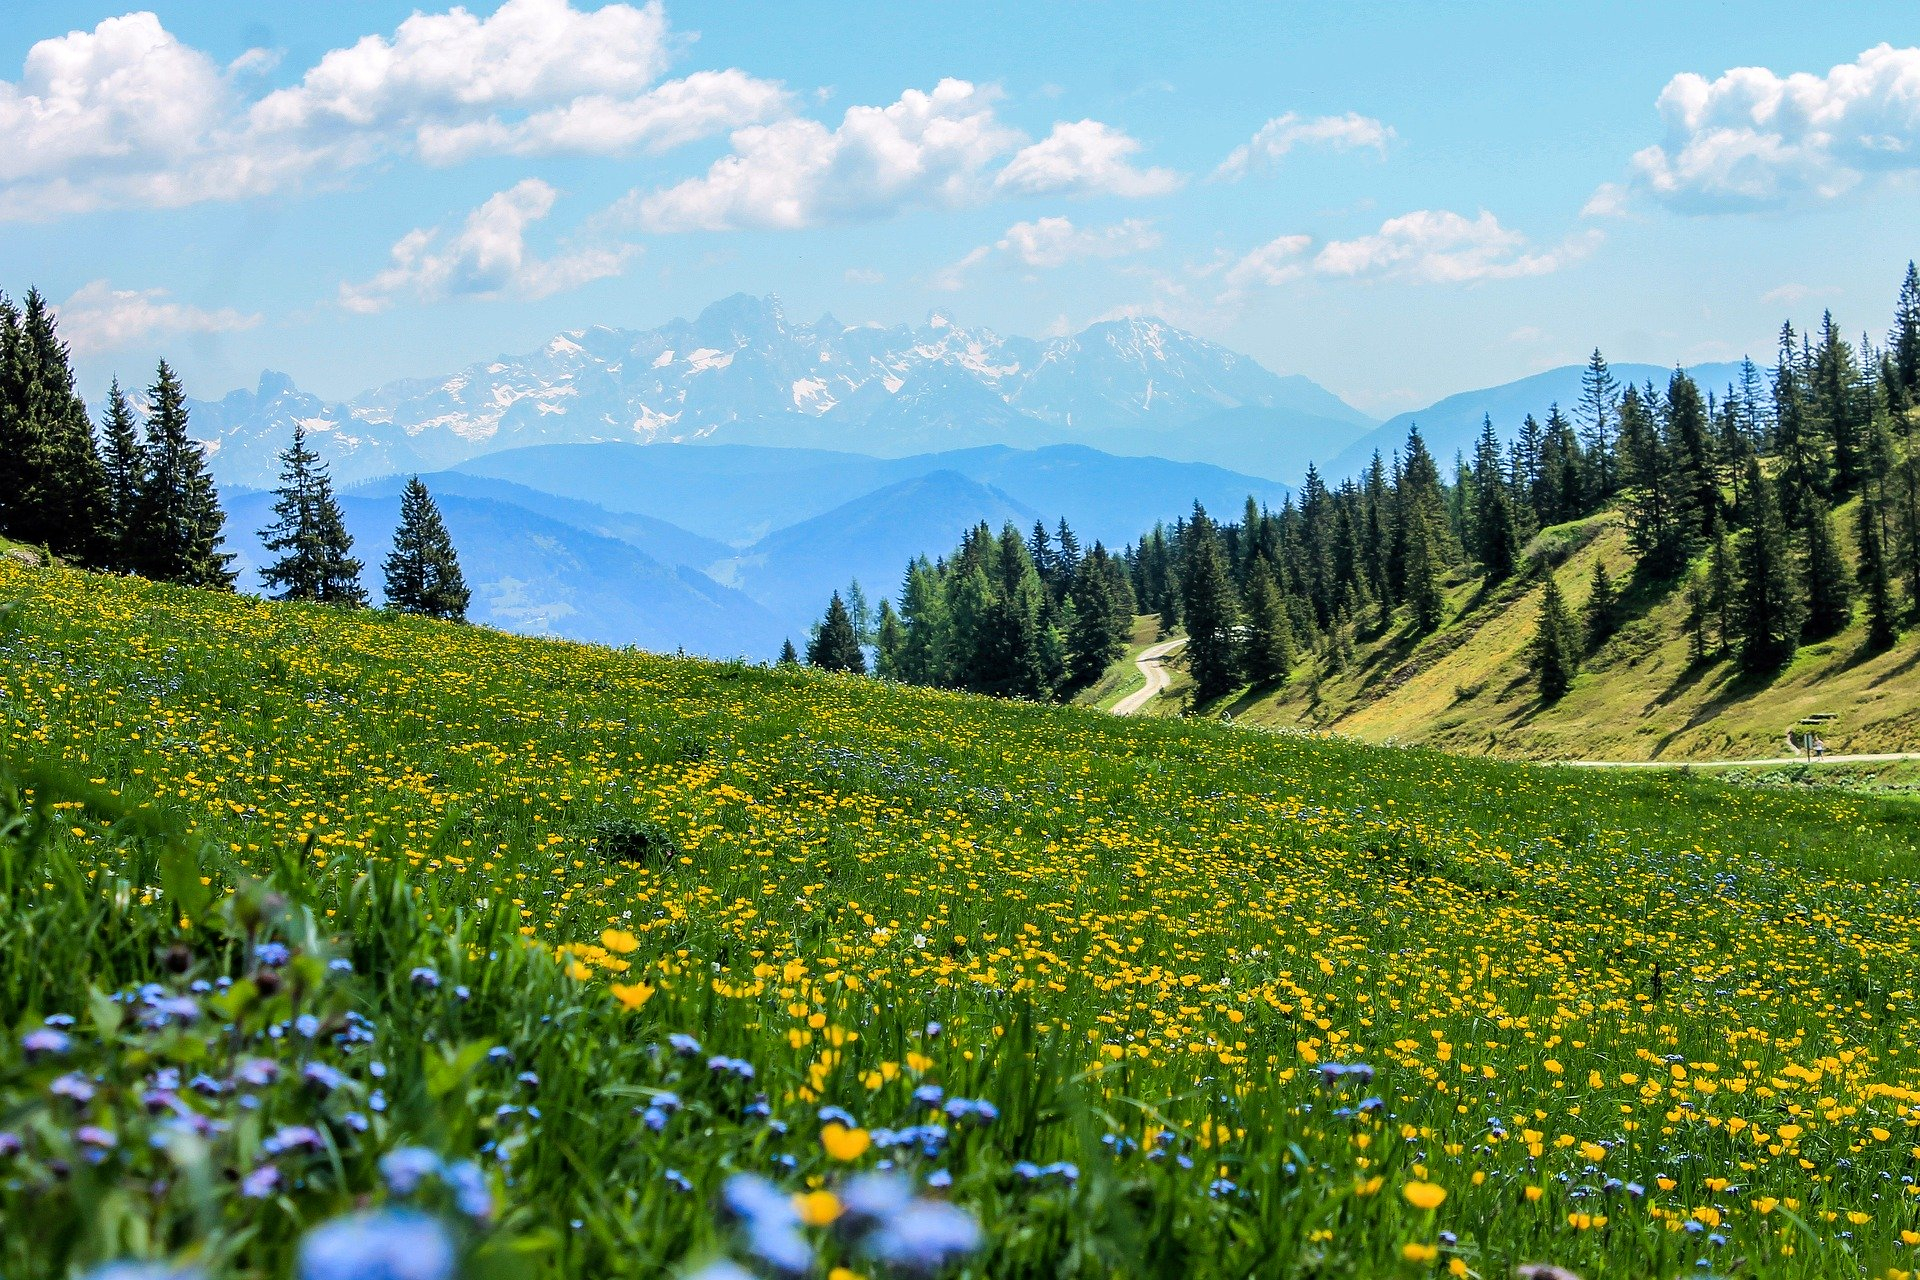 Photo of a meadow with yellow flowers in the foreground, and trees and mountains in the distance